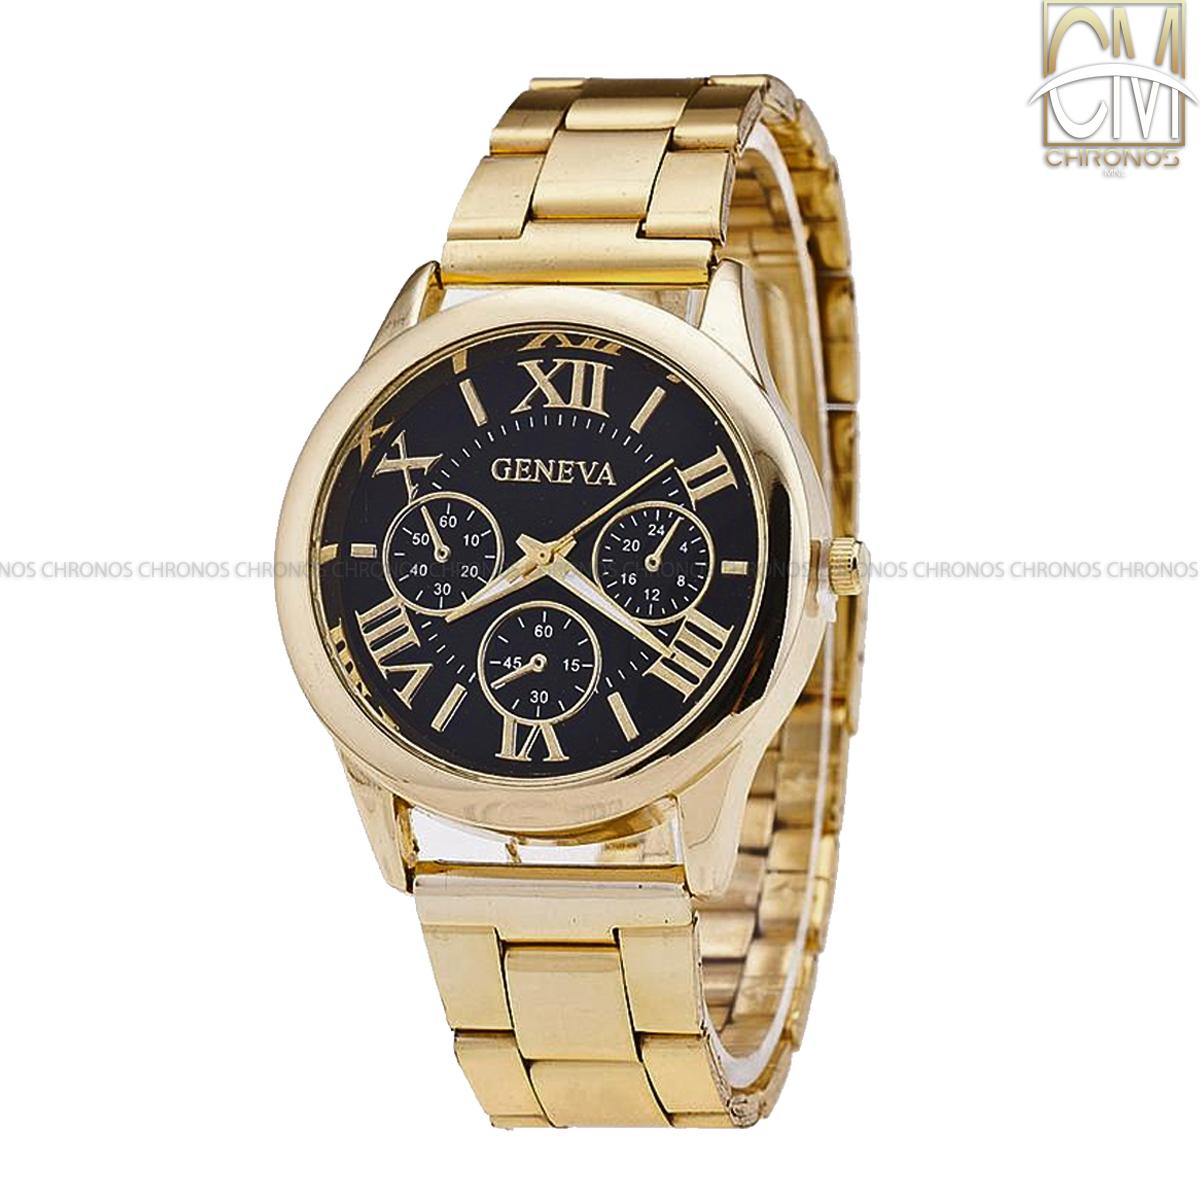 ChronosMNL Geneva Roman Numerals Women's Gold/black Steel-belt Watch SY-3